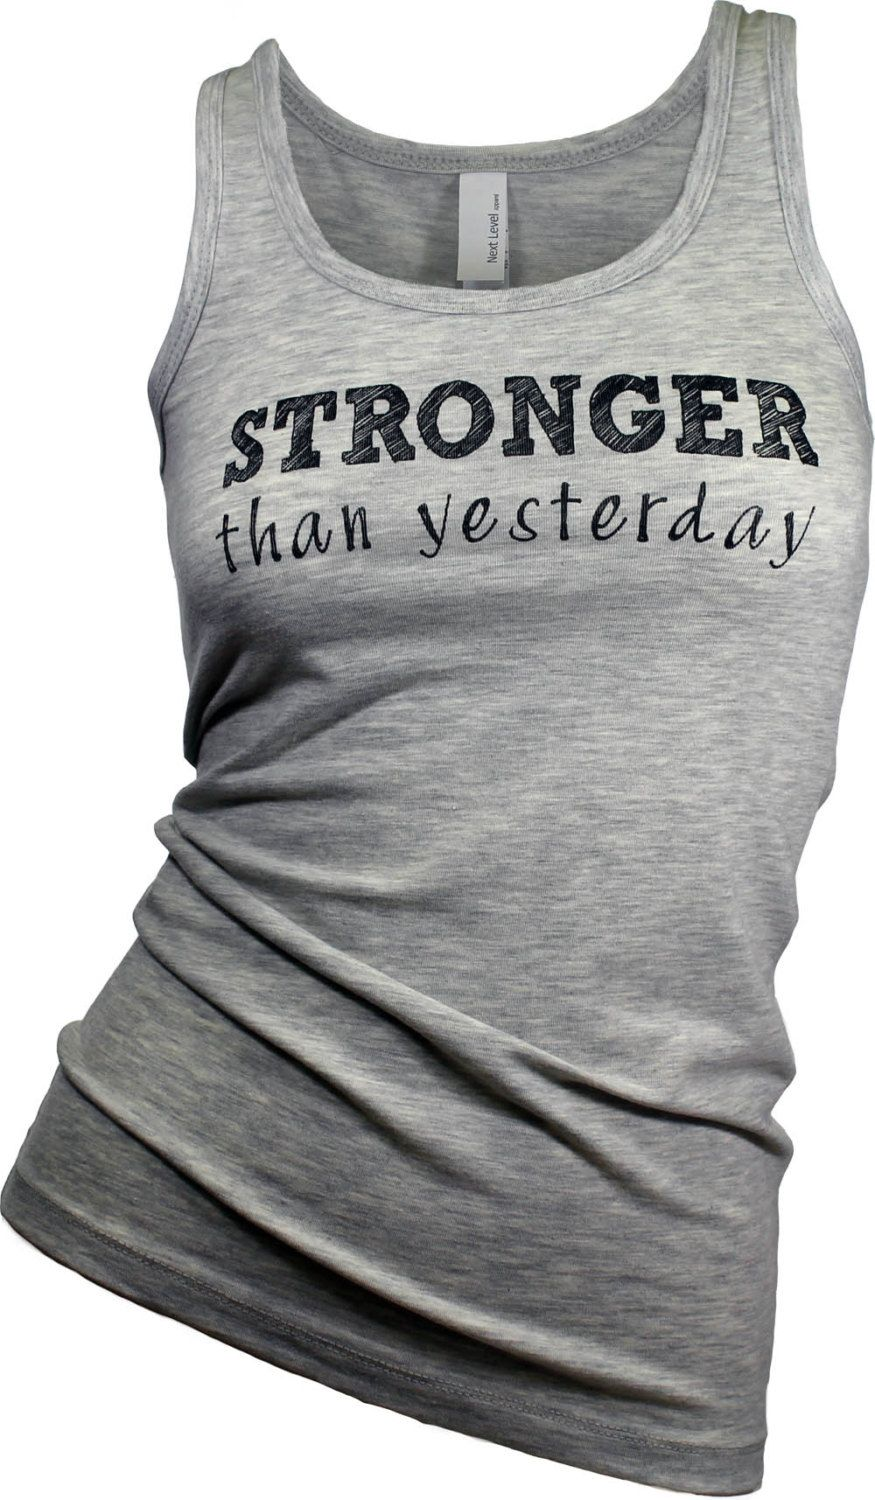 e276c10292a Stronger than yesterday tank top (Britney Spears inspired) Gym tank top. workout  tank. workout clothes. graphic tees for women. yoga tank.